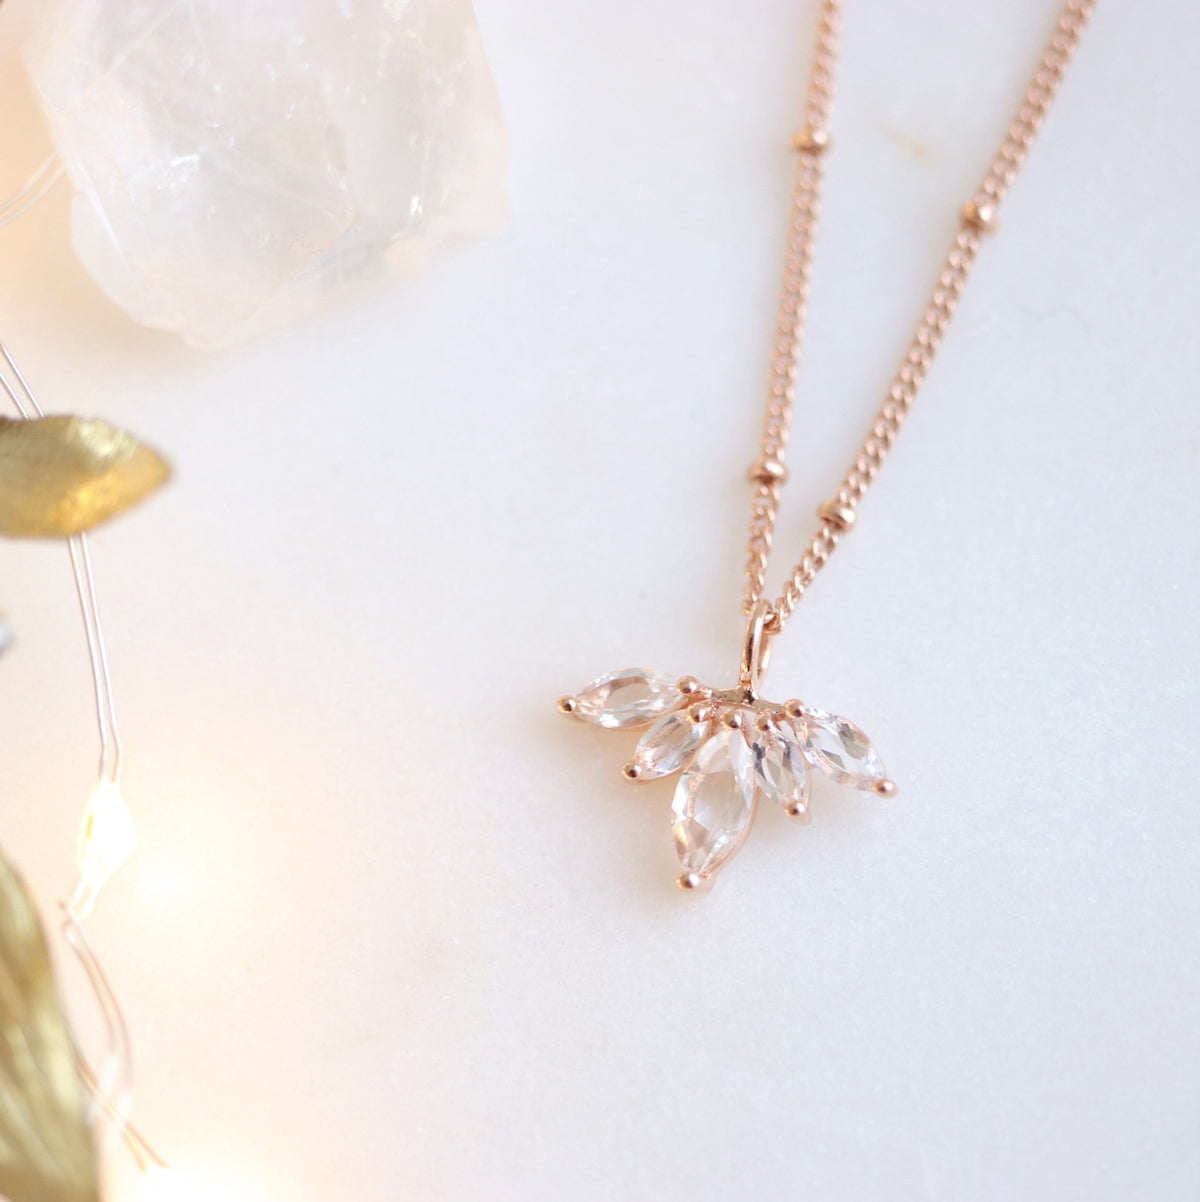 DAY 10 - UNITY CROWN NECKLACE - WHITE TOPAZ & ROSE GOLD - SO PRETTY CARA COTTER